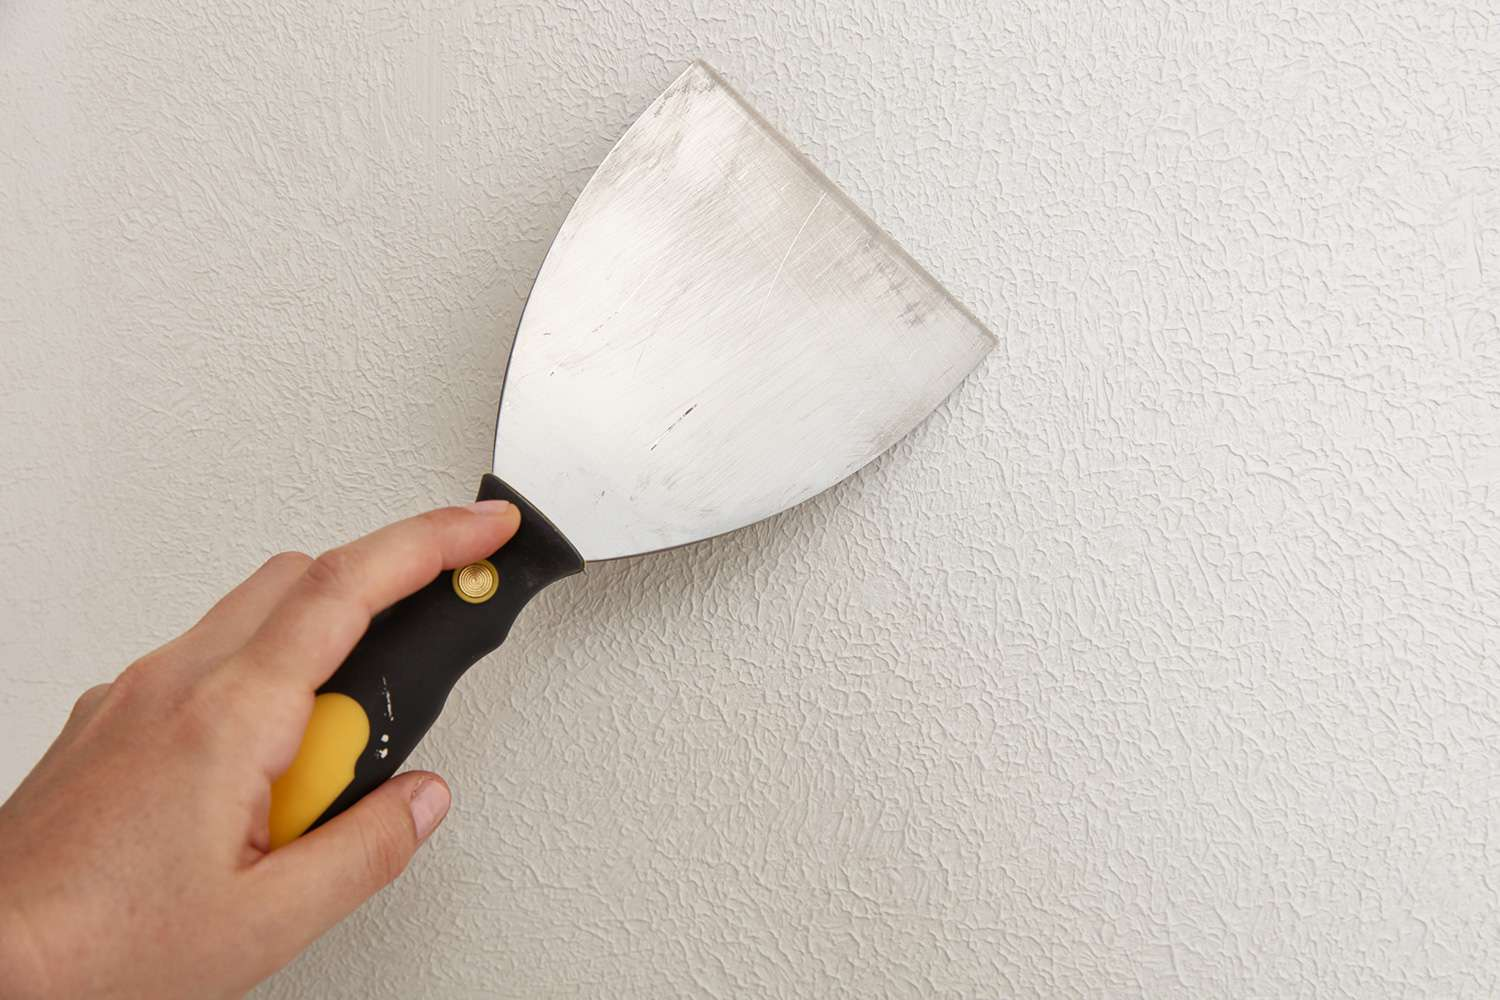 Use drywall knife to smooth out the textured surface